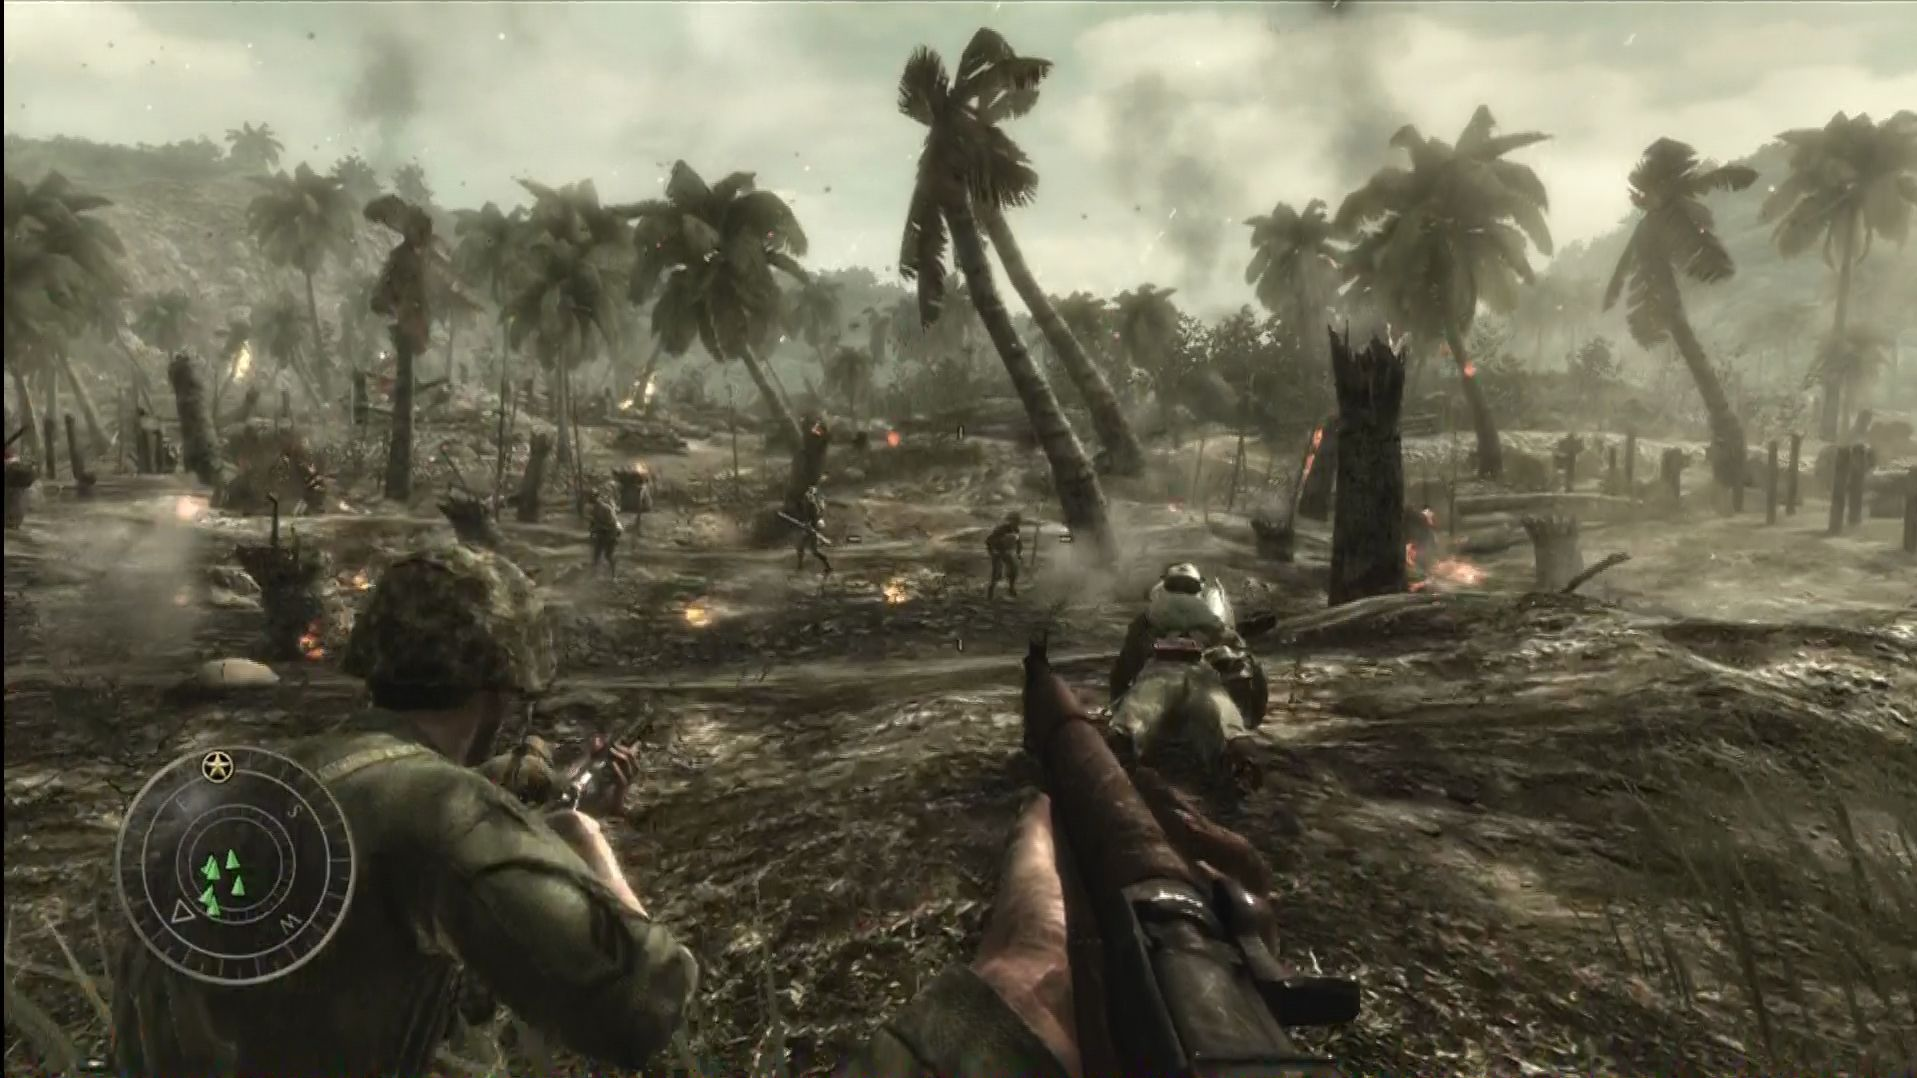 'Swatting' Prank By 'Call Of Duty' Players Reportedly Leads To Deadly Police Shooting